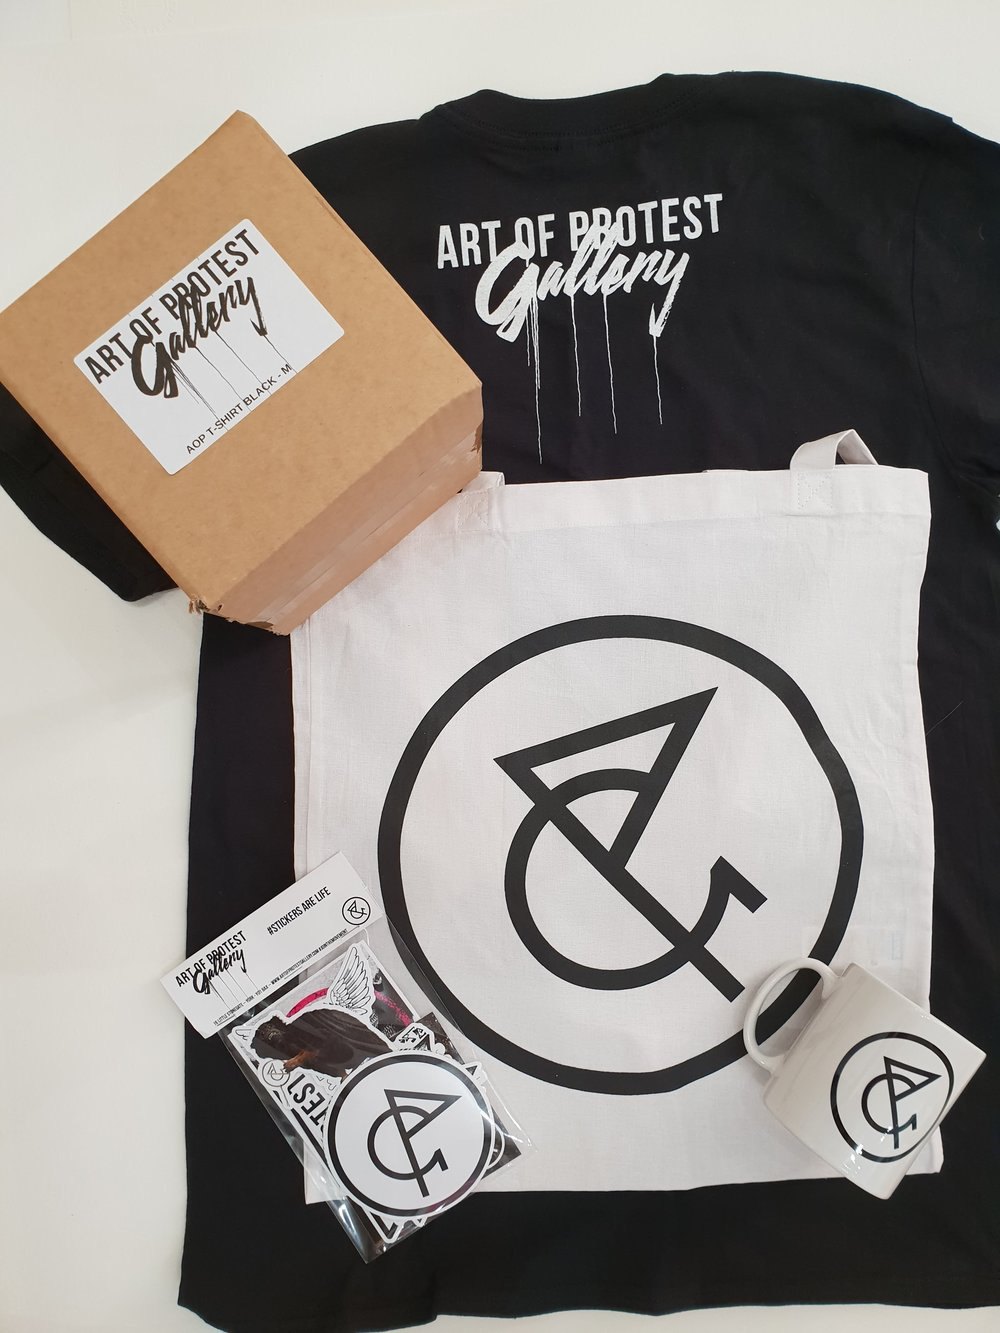 Art of Protest Gallery Merch Kit